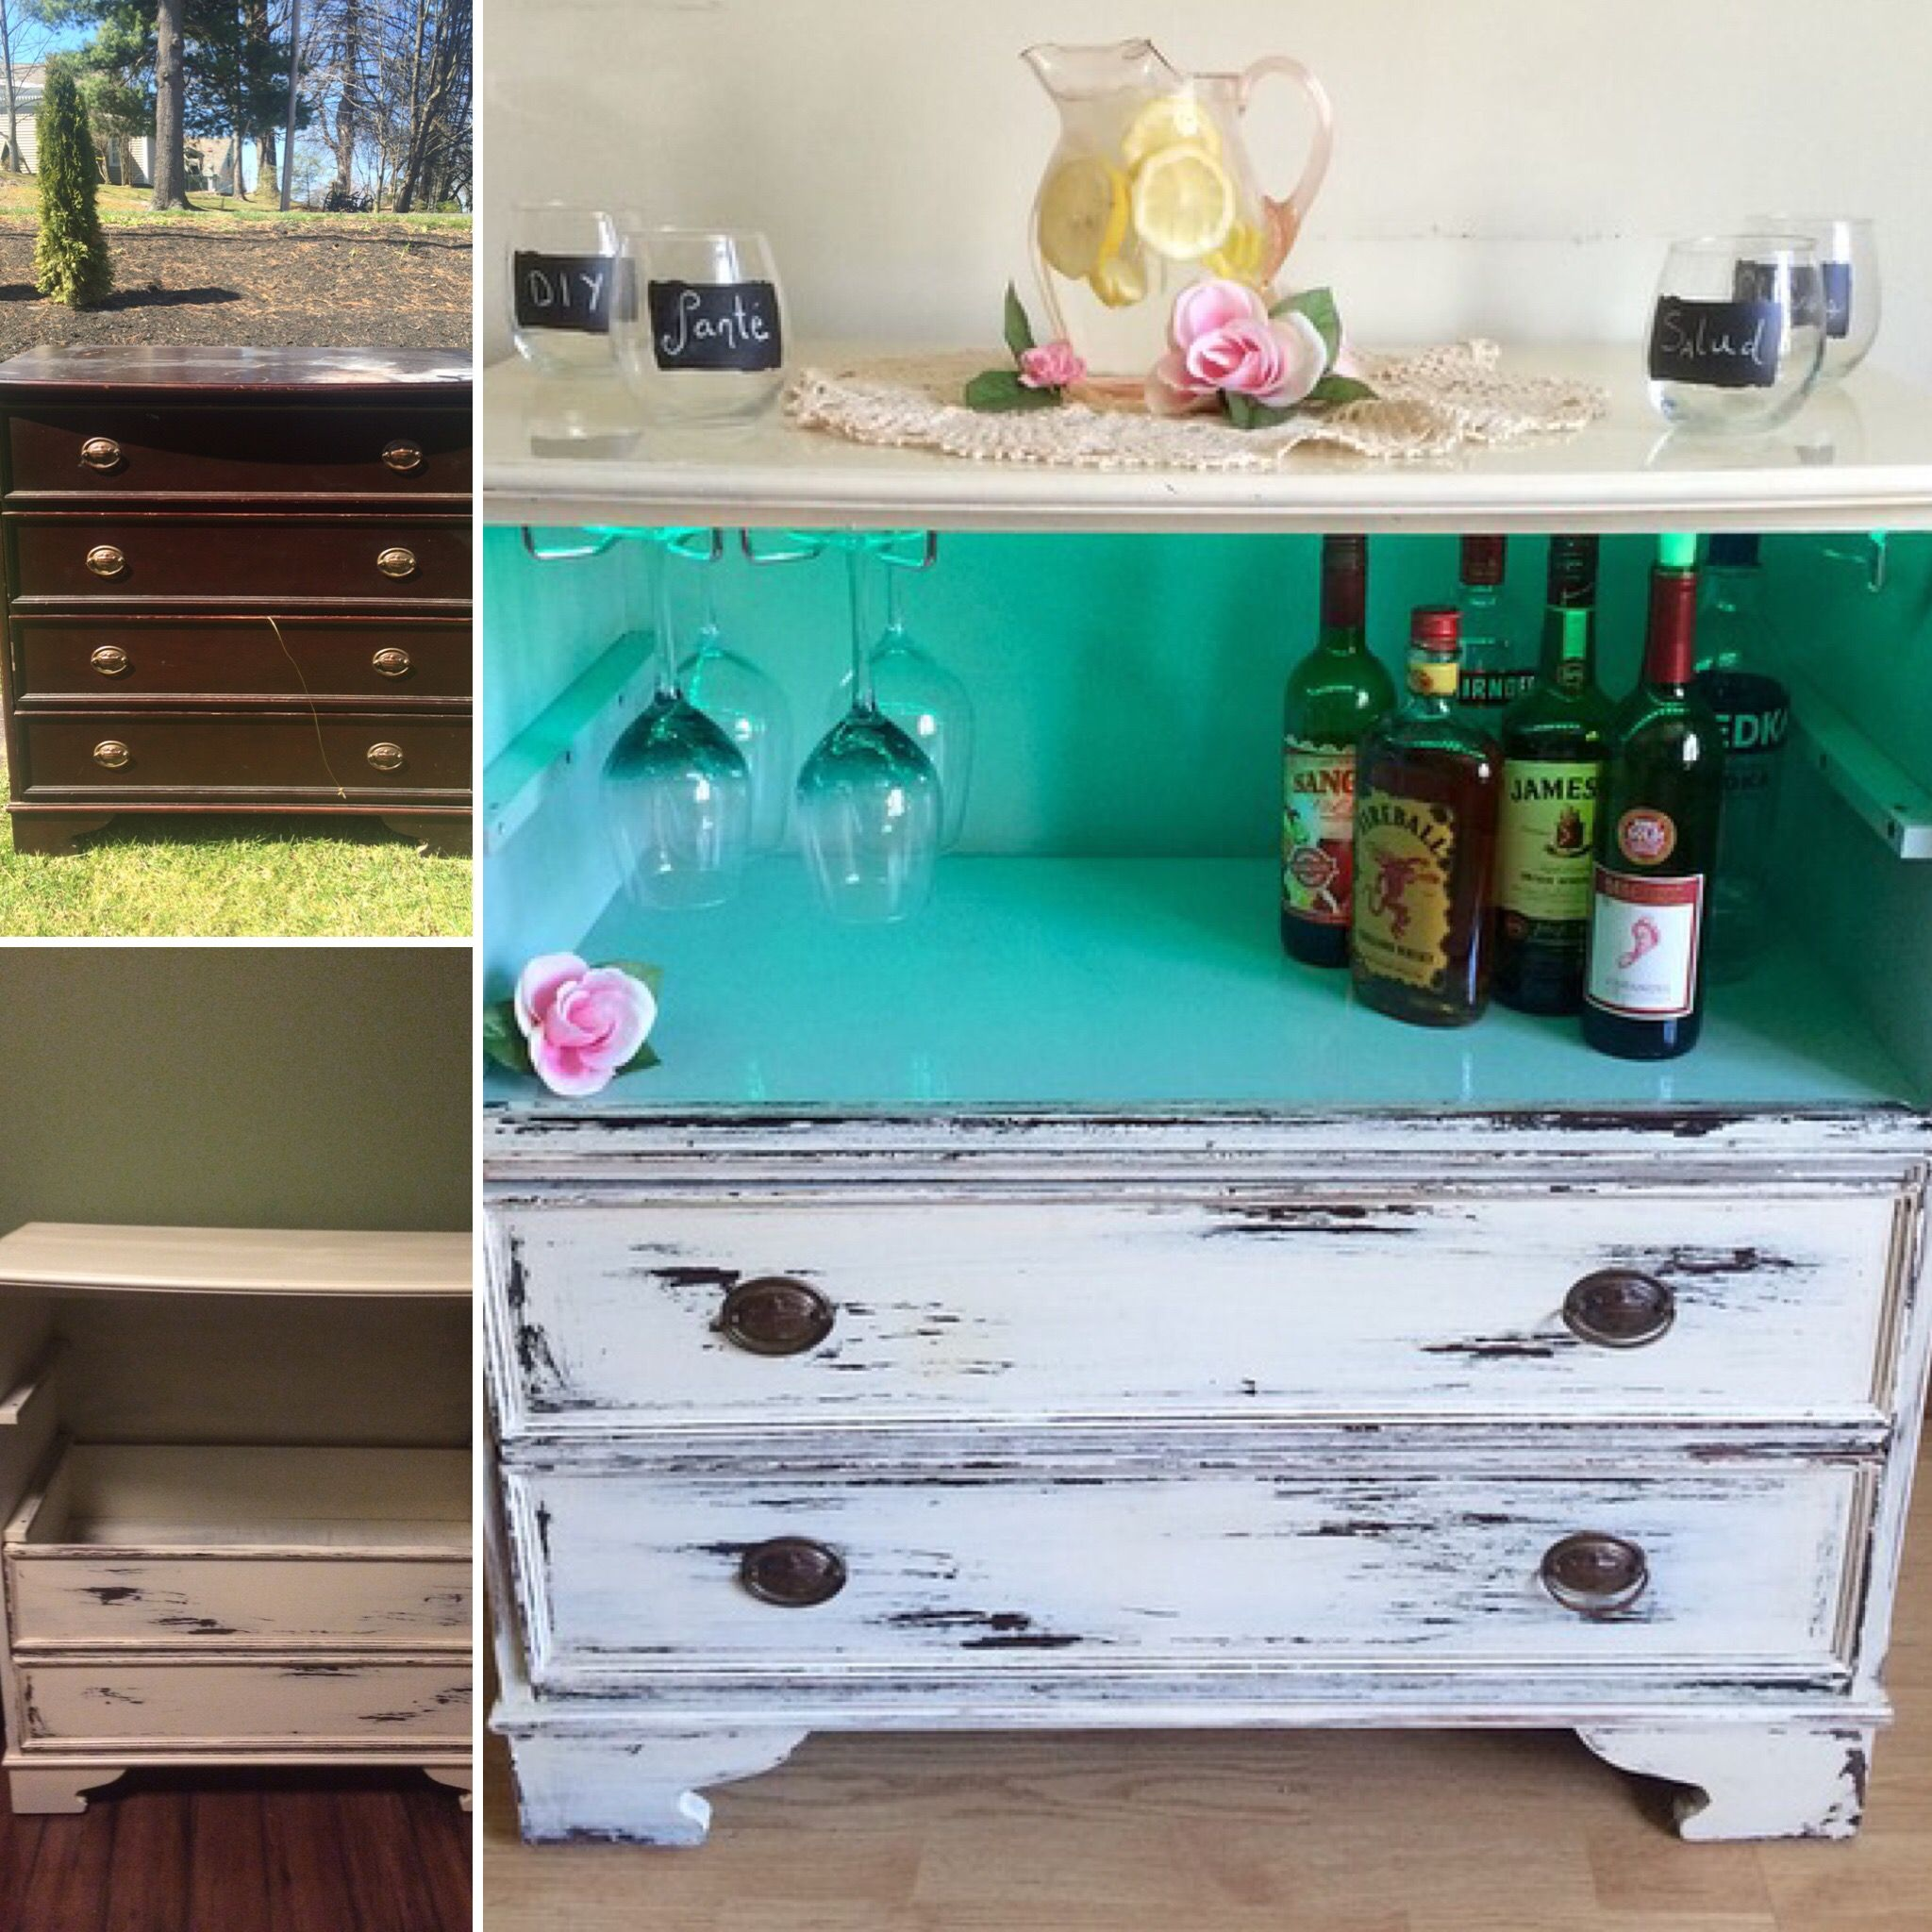 Ingenious Repurposing Unusual Kitchen Islands And Printers: DIY Dresser To Lighted Wine Bar